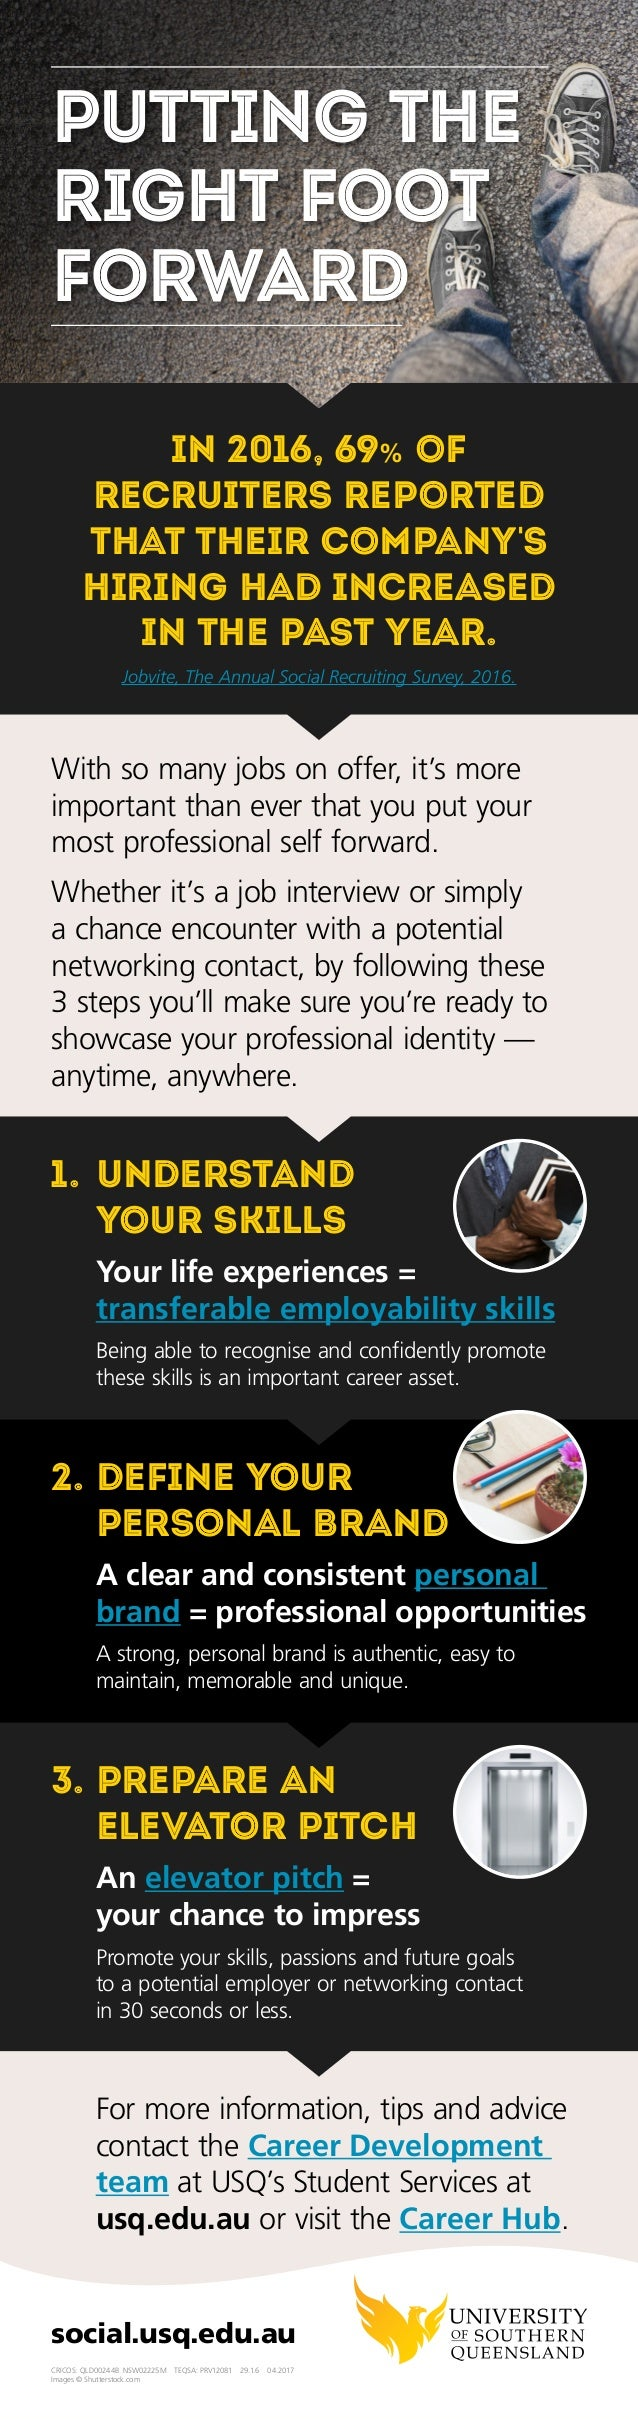 For more information, tips and advice contact the Career Development team at USQ's Student Services at usq.edu.au or visit...